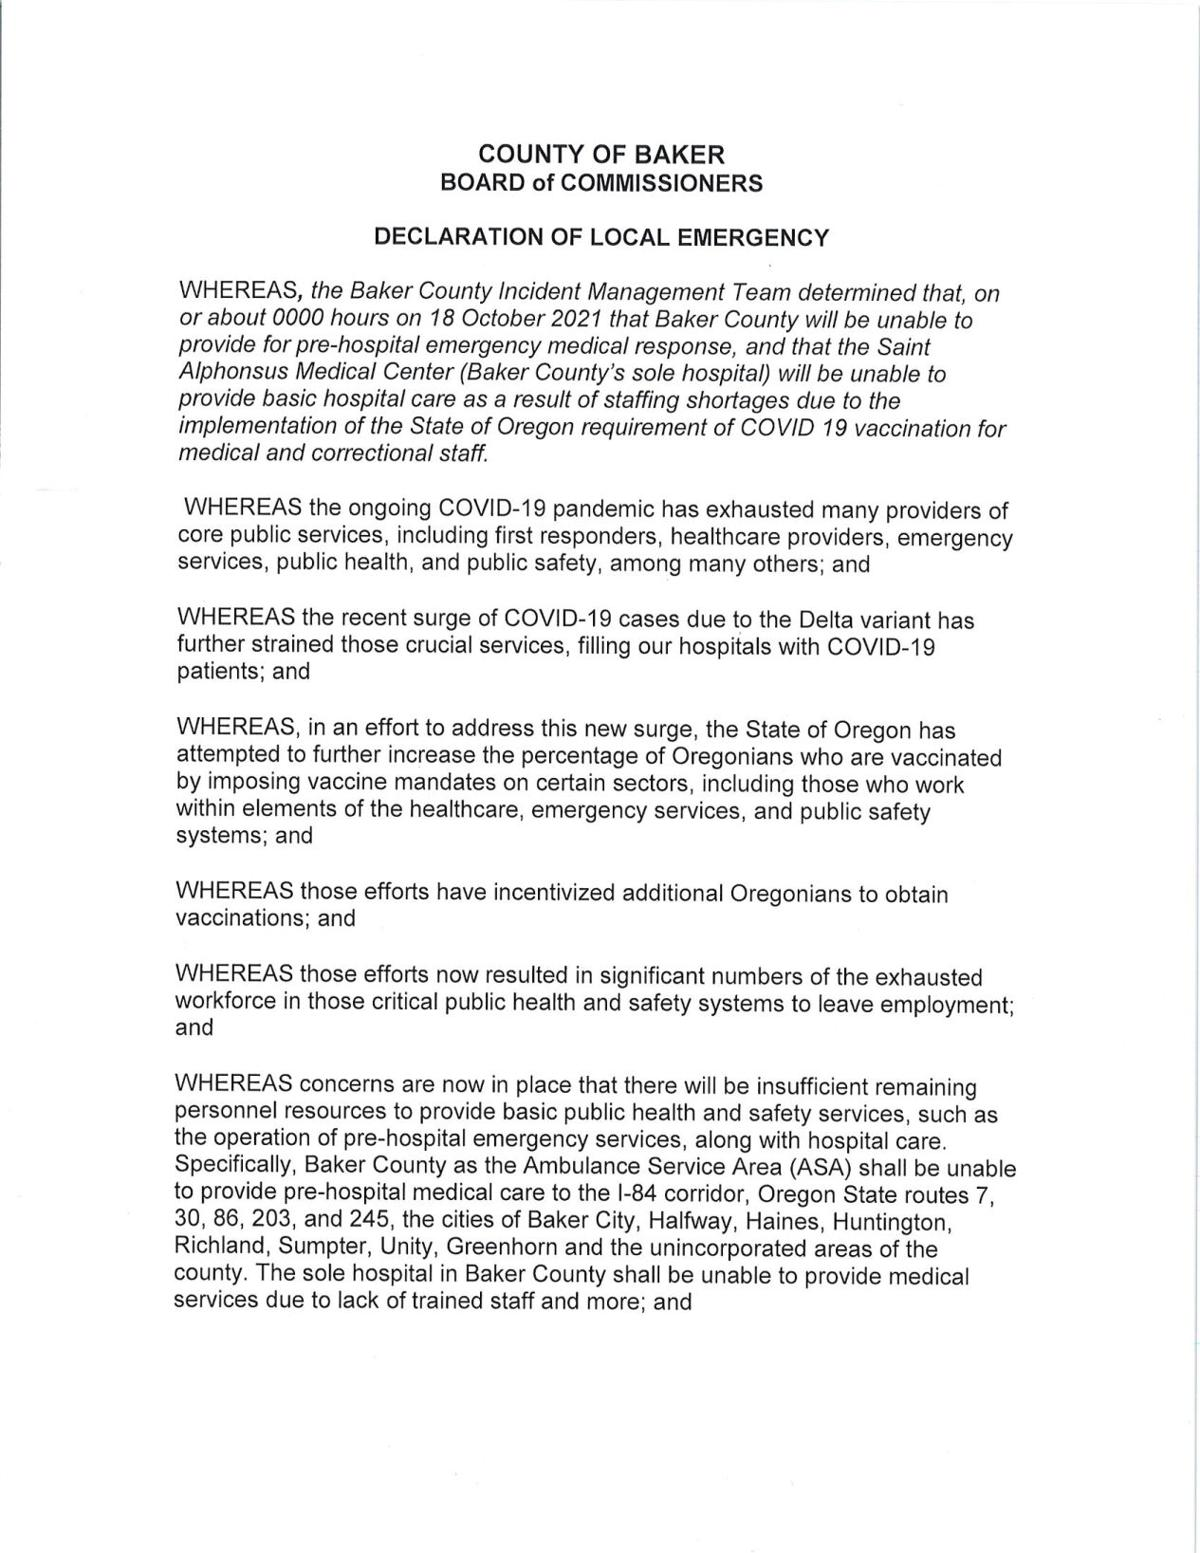 Press Release September 22, 2021 Baker County declares emergency, requests assistance for first responders-2.jpg